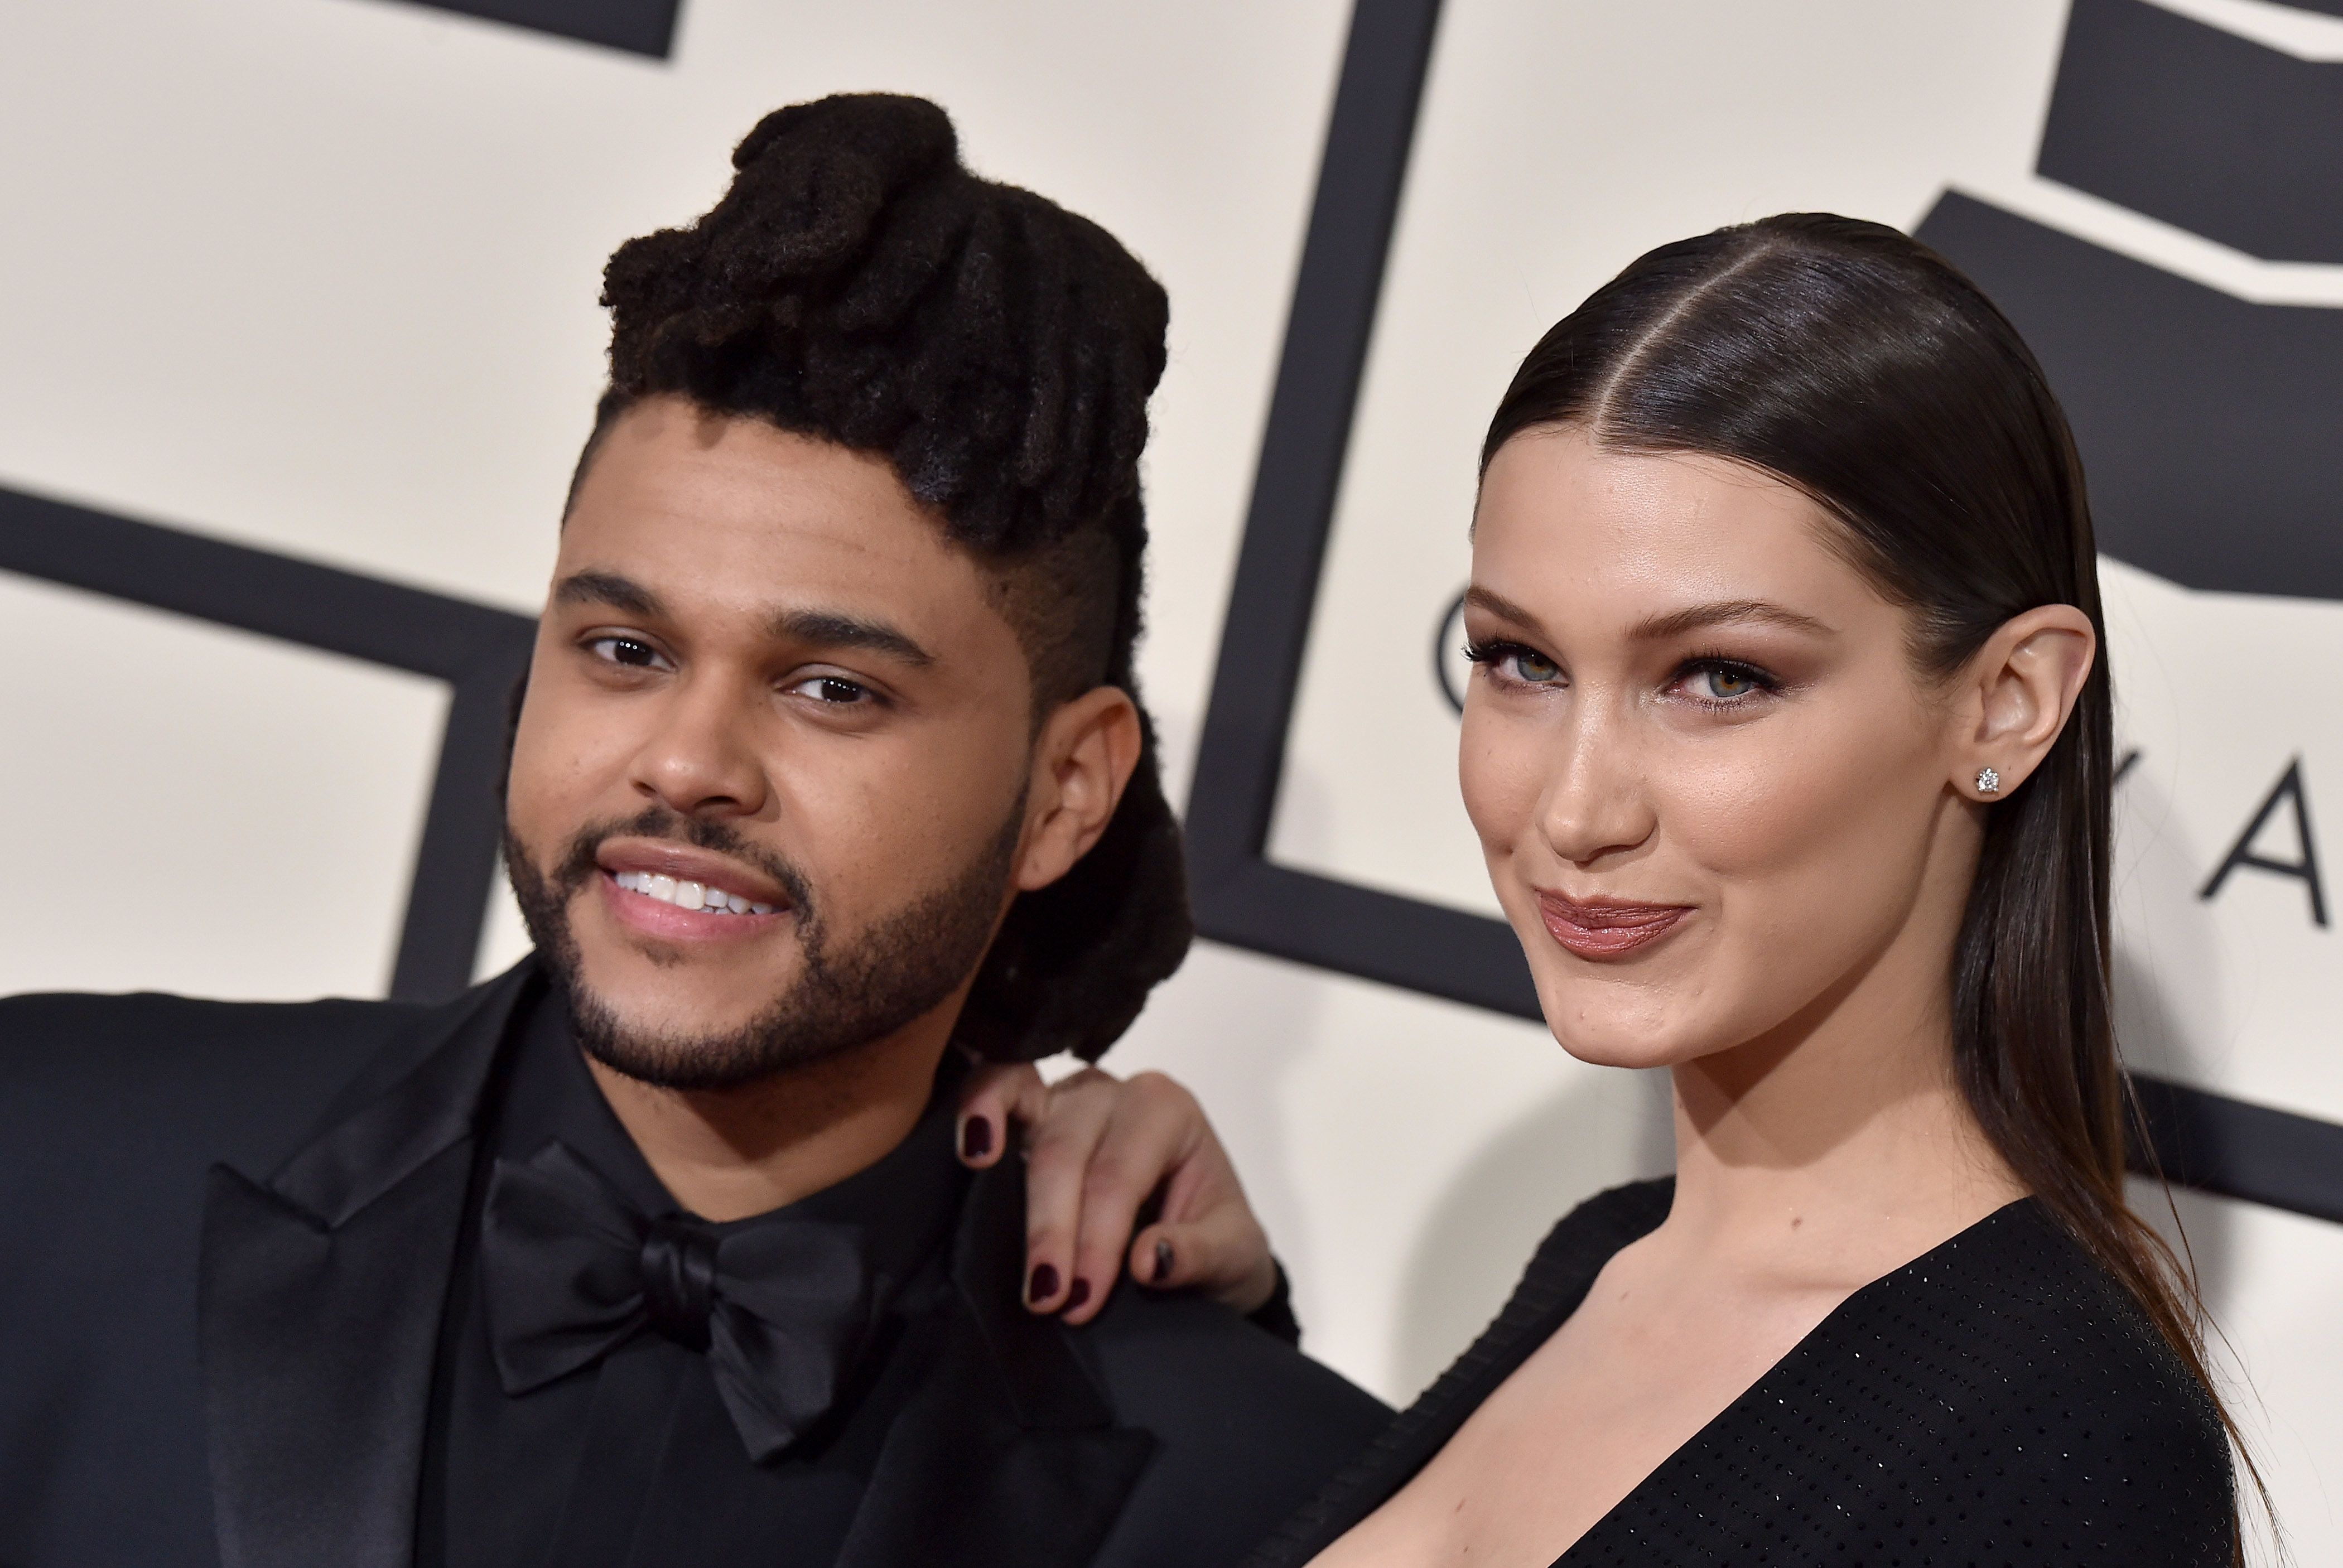 Exes Bella Hadid And The Weeknd Spotted Kissing At Coachella